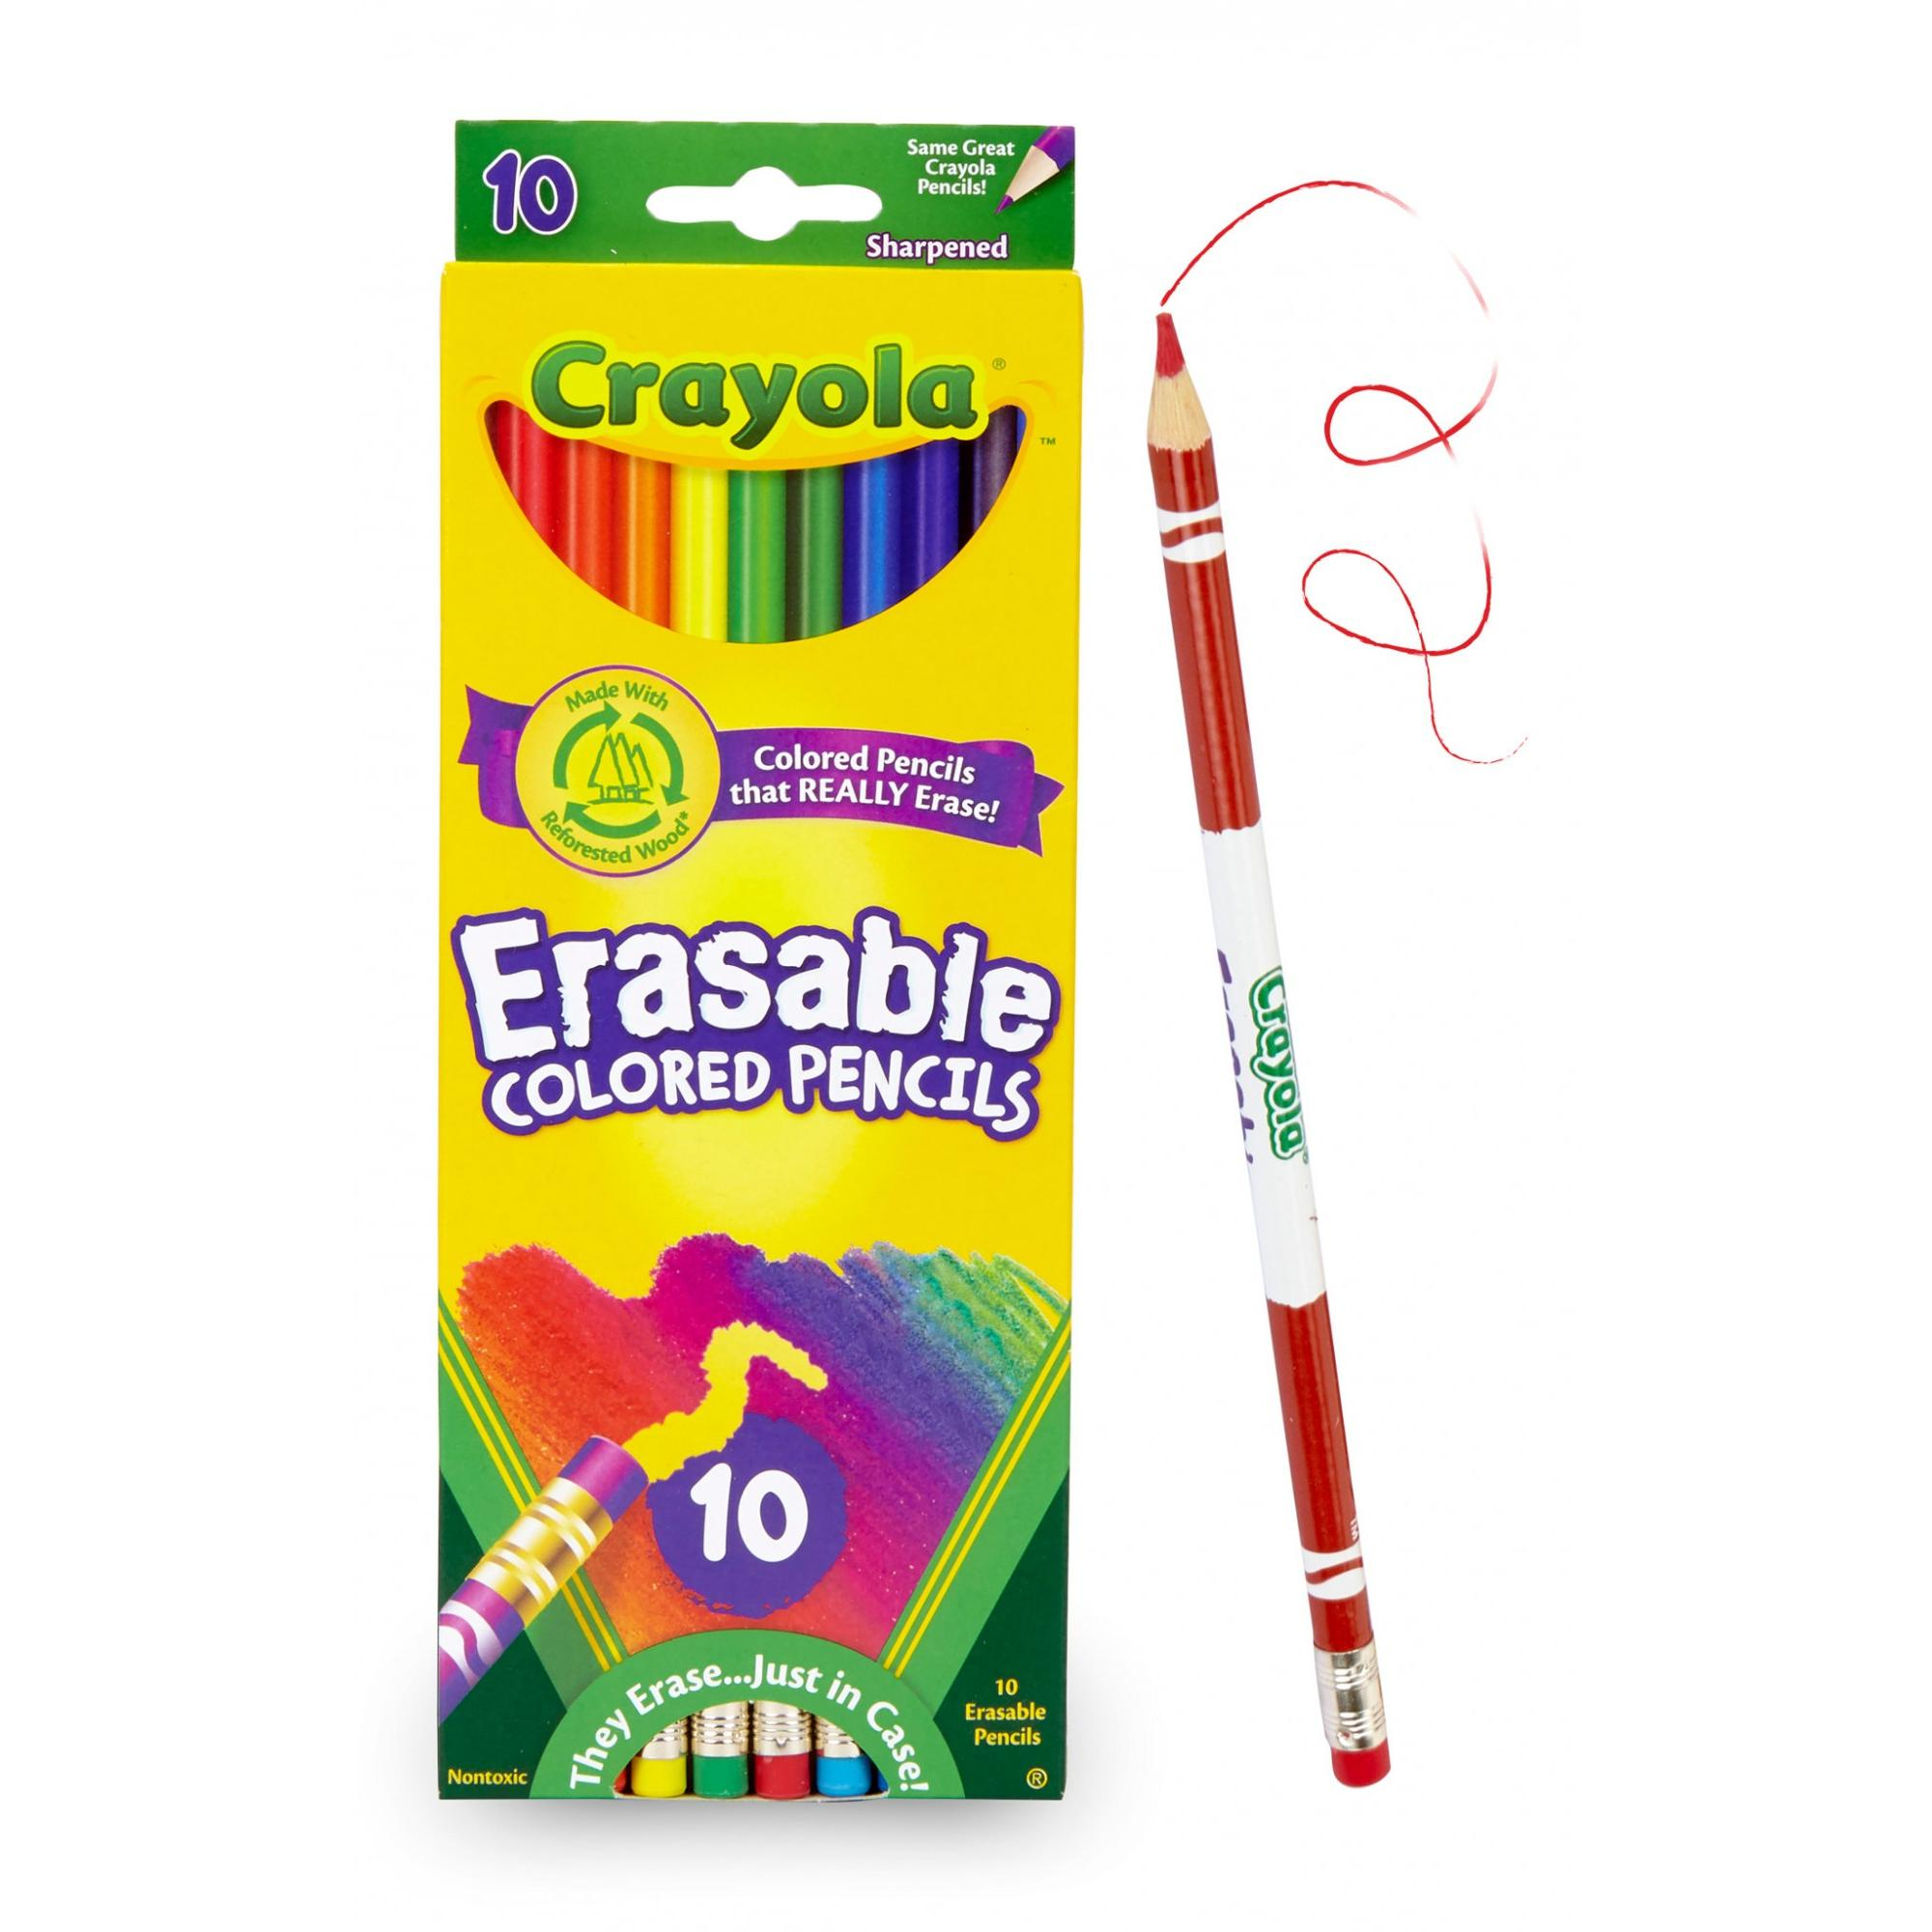 Crayola Erasable Colored Pencils, Great For Coloring Books, 10 Count